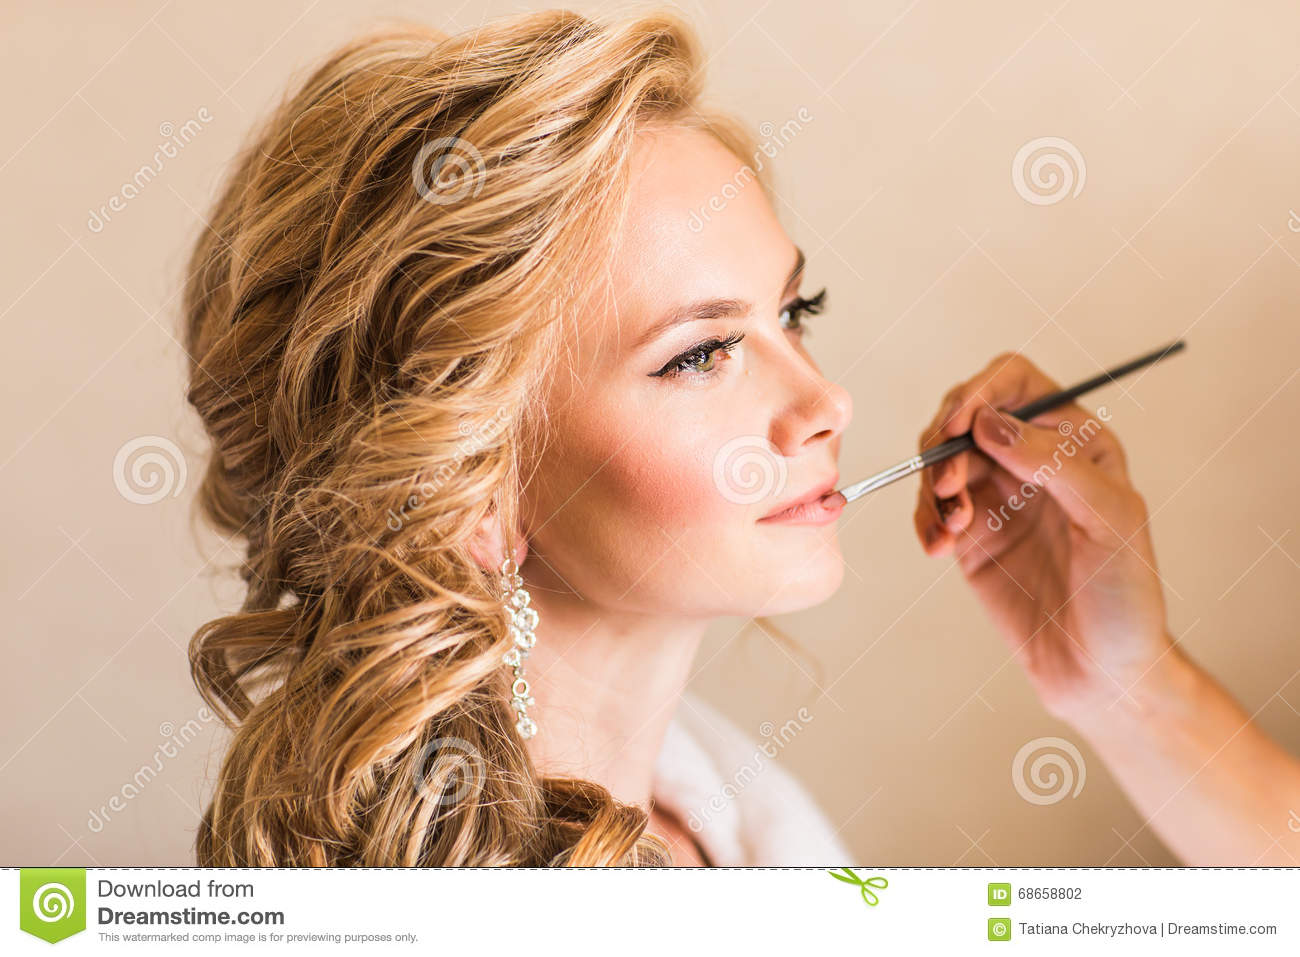 Wedding makeup artist making a make up for bride. Beautiful model girl indoors. Beauty blonde woman with curly hair